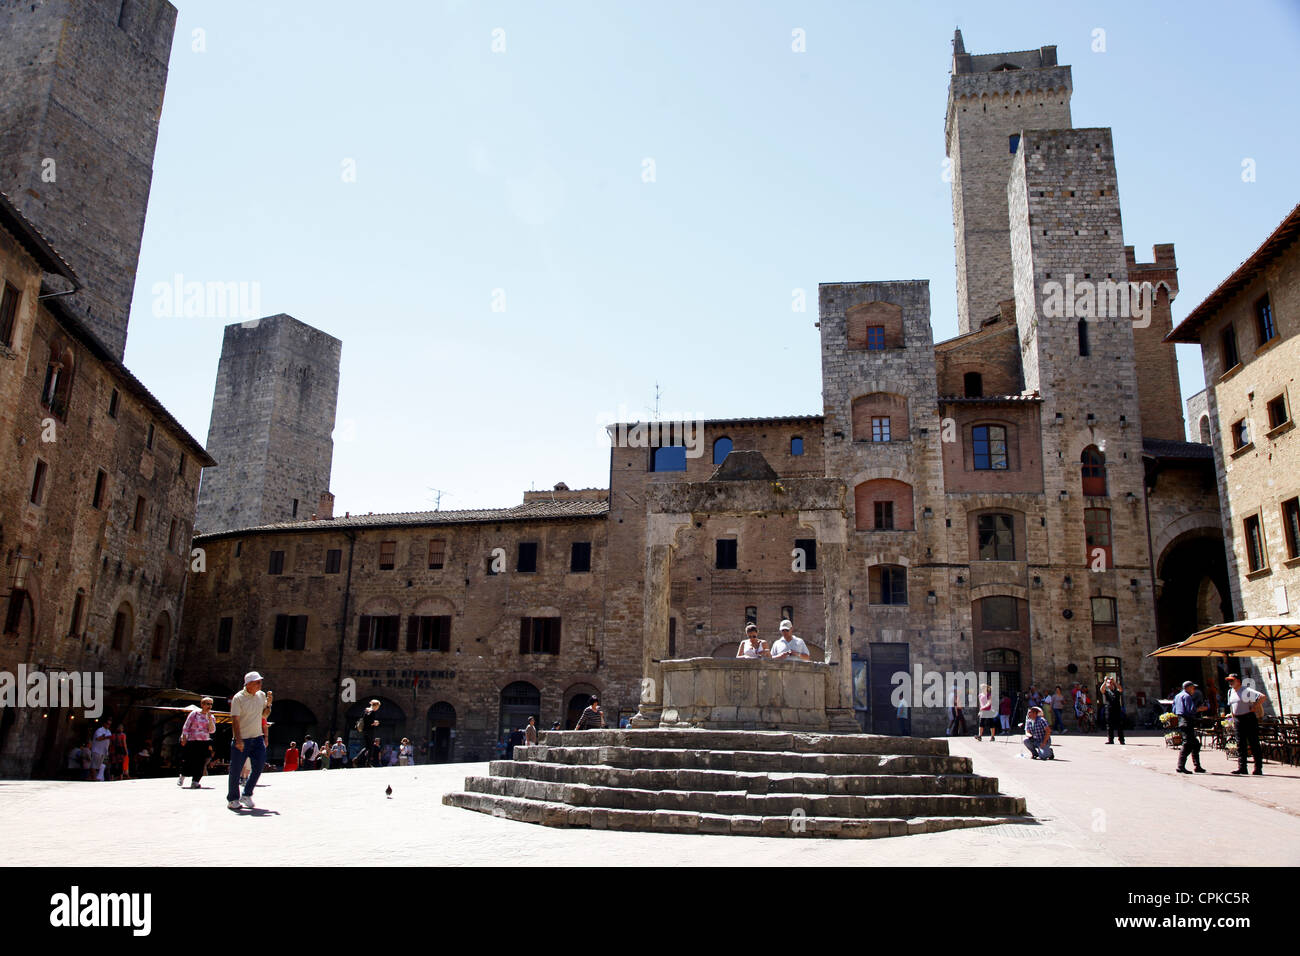 WELL TOWN SQUARE & TOWERS SAN GIMIGNANO TUSCANY ITALY 10 May 2012 - Stock Image